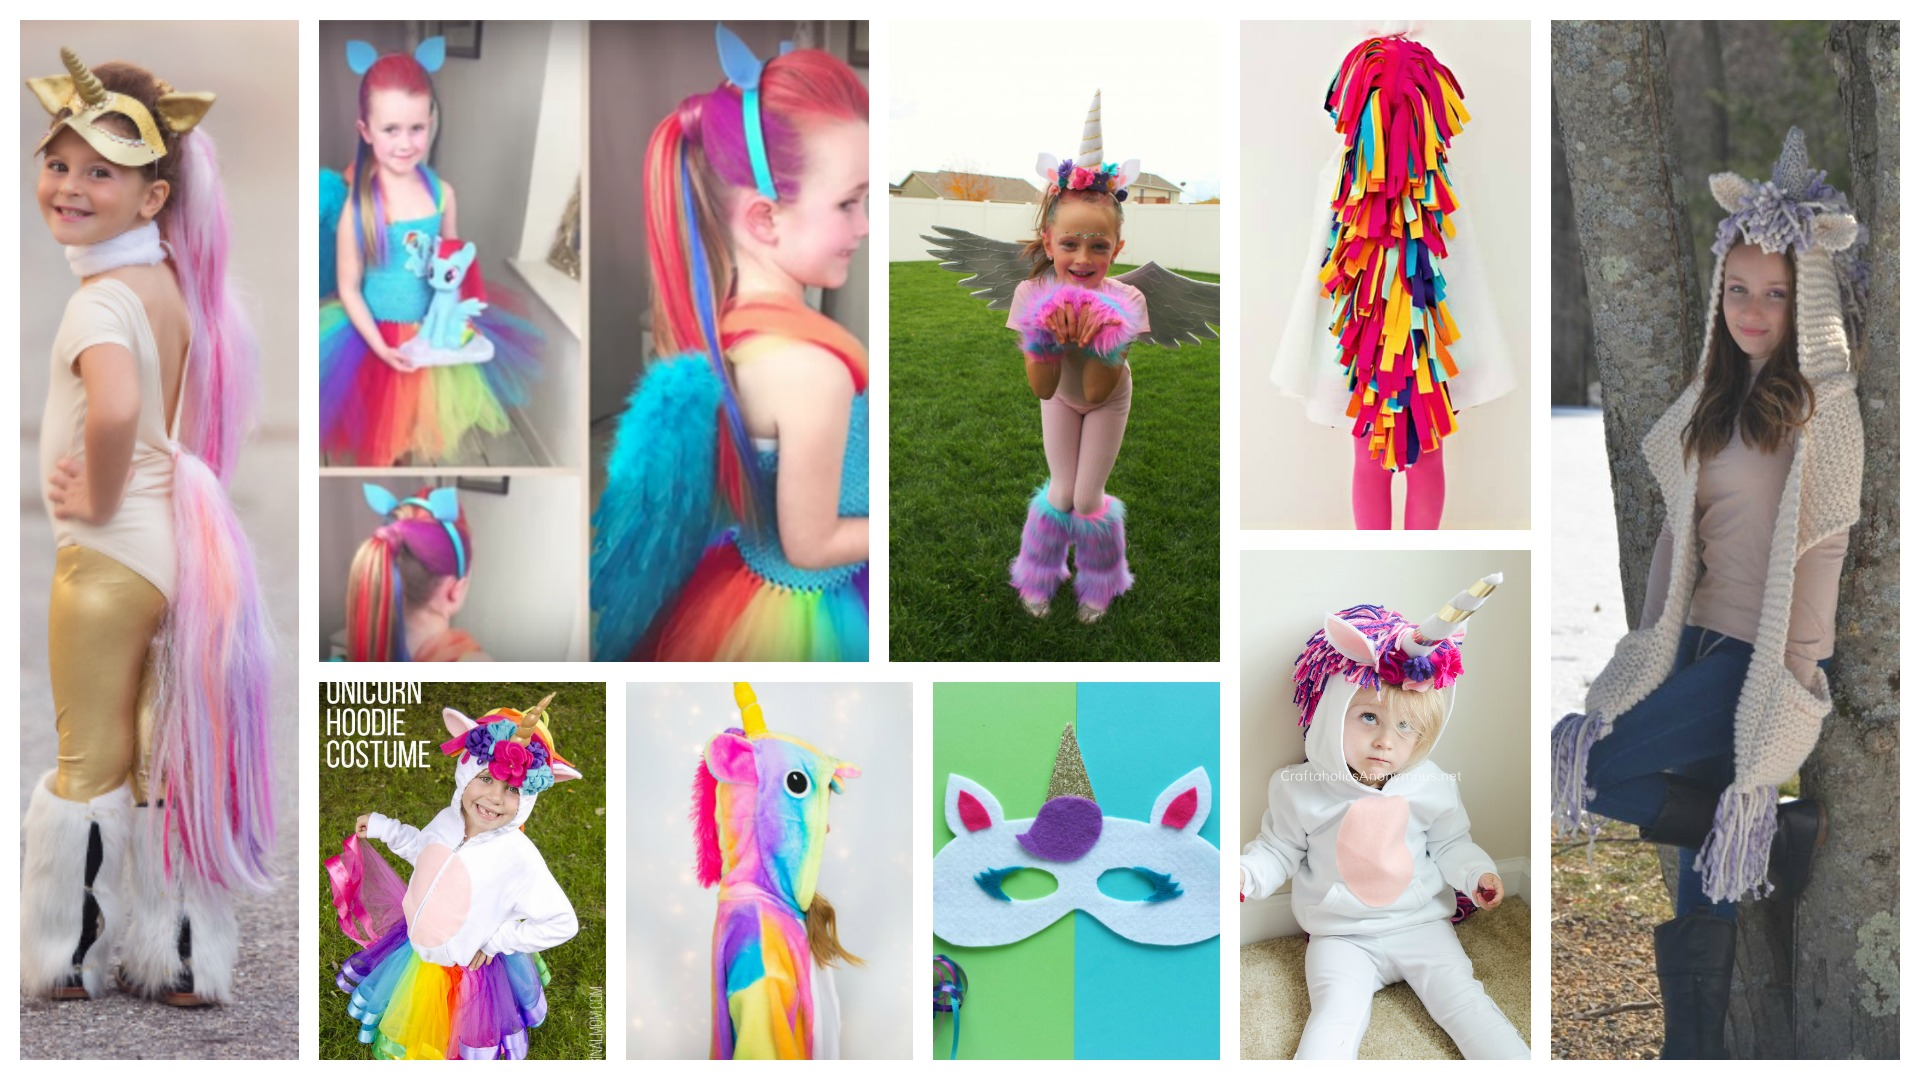 11 Rainbow Unicorn Costume Ideas to DIY or Buy